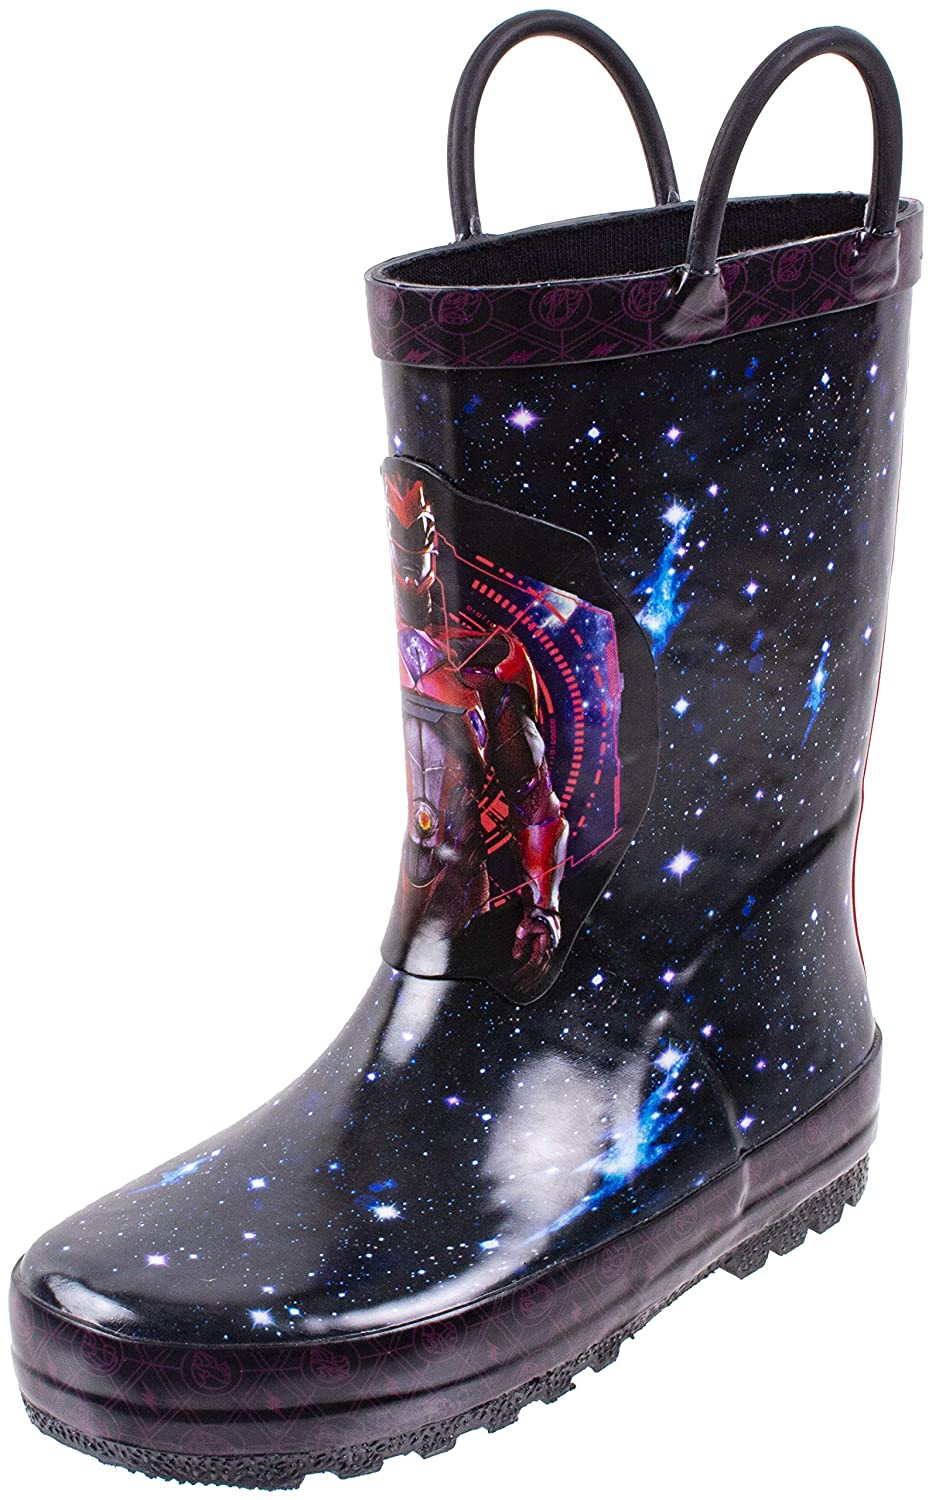 Power Rangers Boy's Rain Boots, Red Ranger Galaxy Print, Waterproof with Easy On Handles, Little Kid/Big Kid Ages 4 to 9 RBR7115BPR